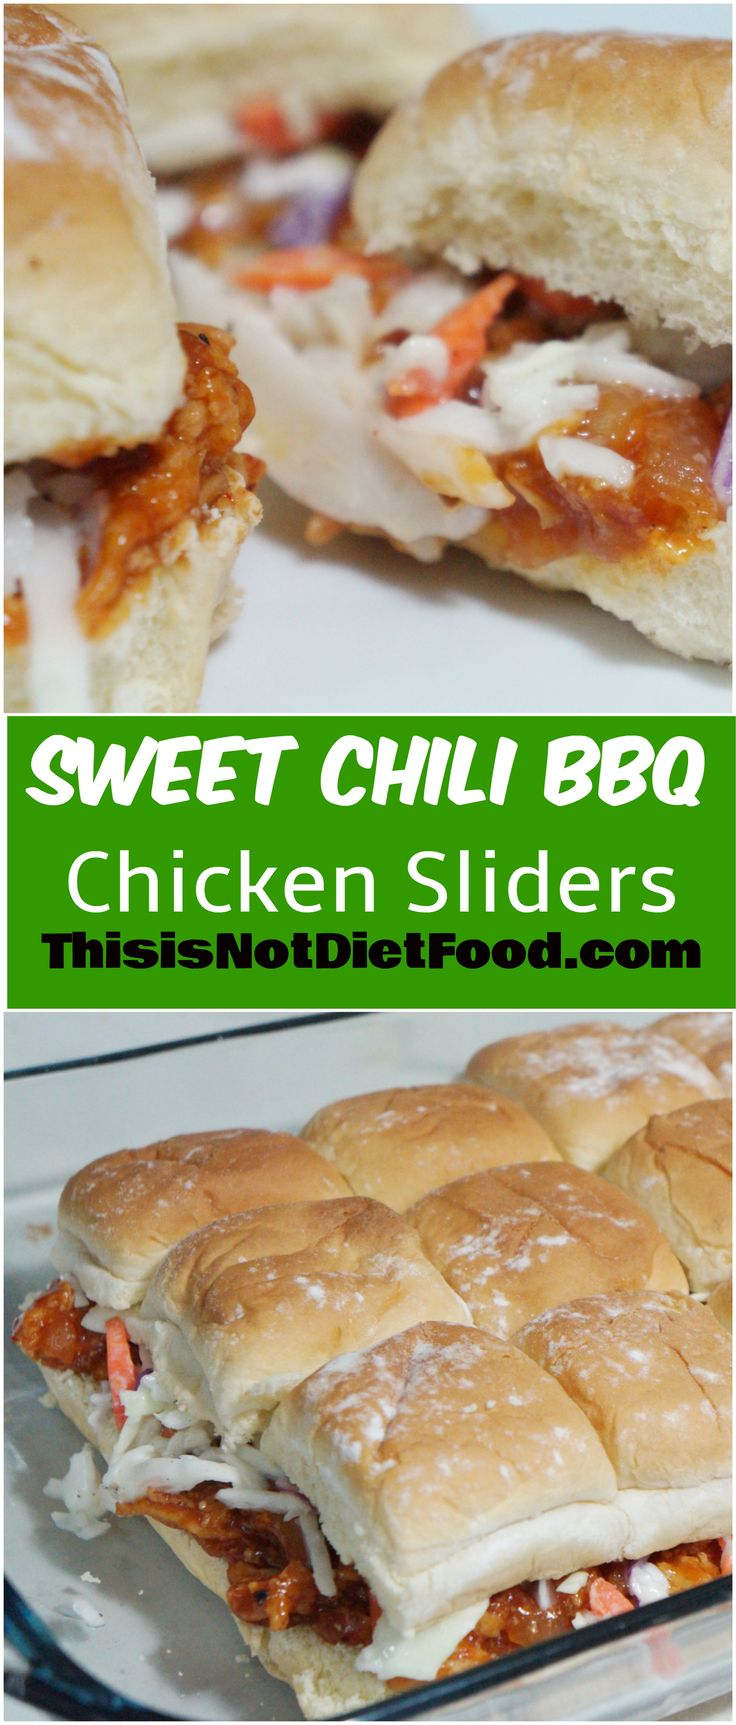 Sweet Chili BBQ Chicken Sliders. Great party snack or easy dinner option.